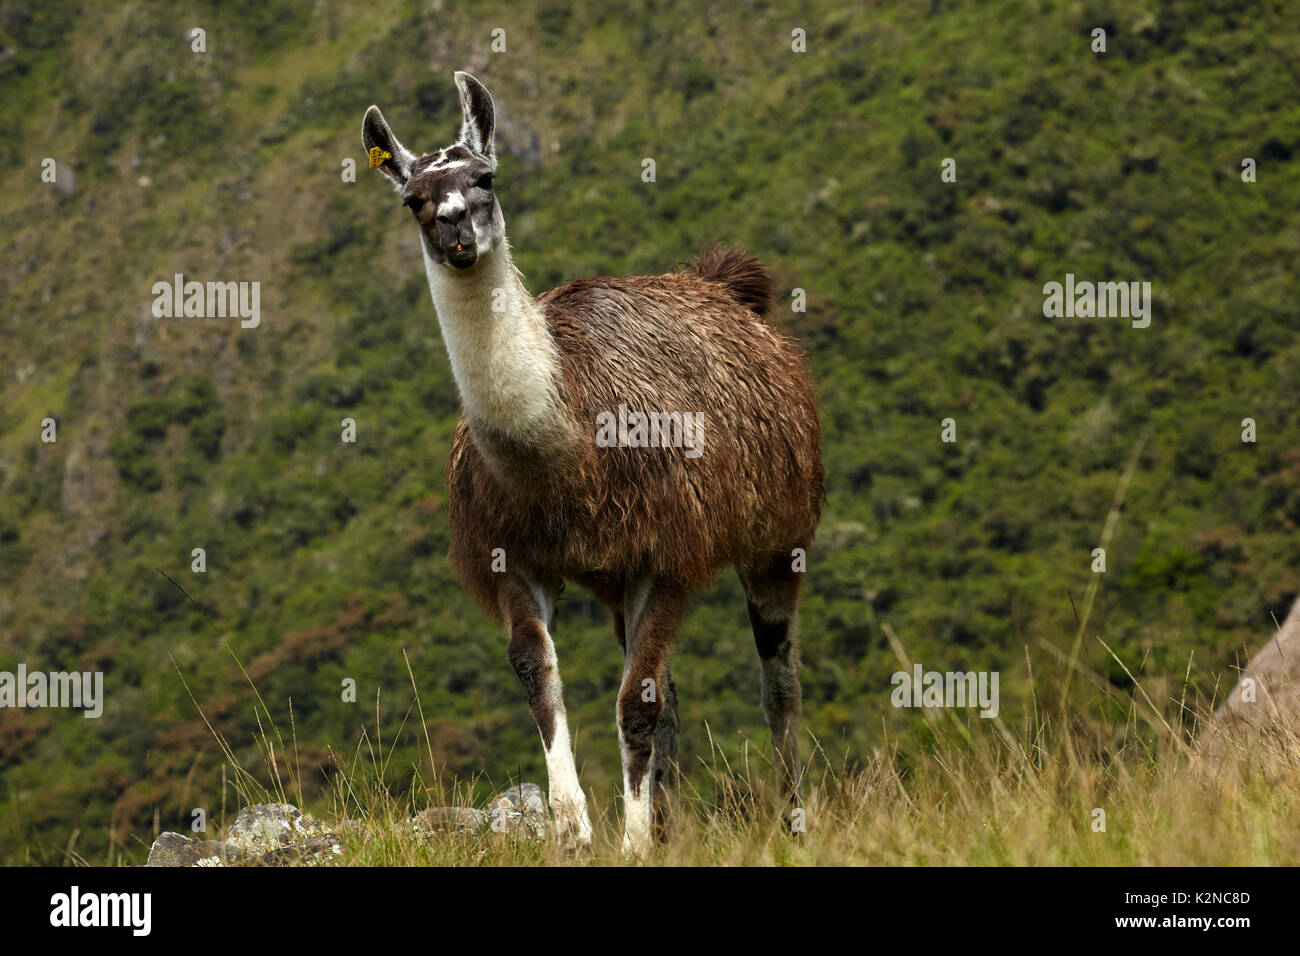 Llama at Machu Picchu (World Heritage Site), Peru, South America - Stock Image